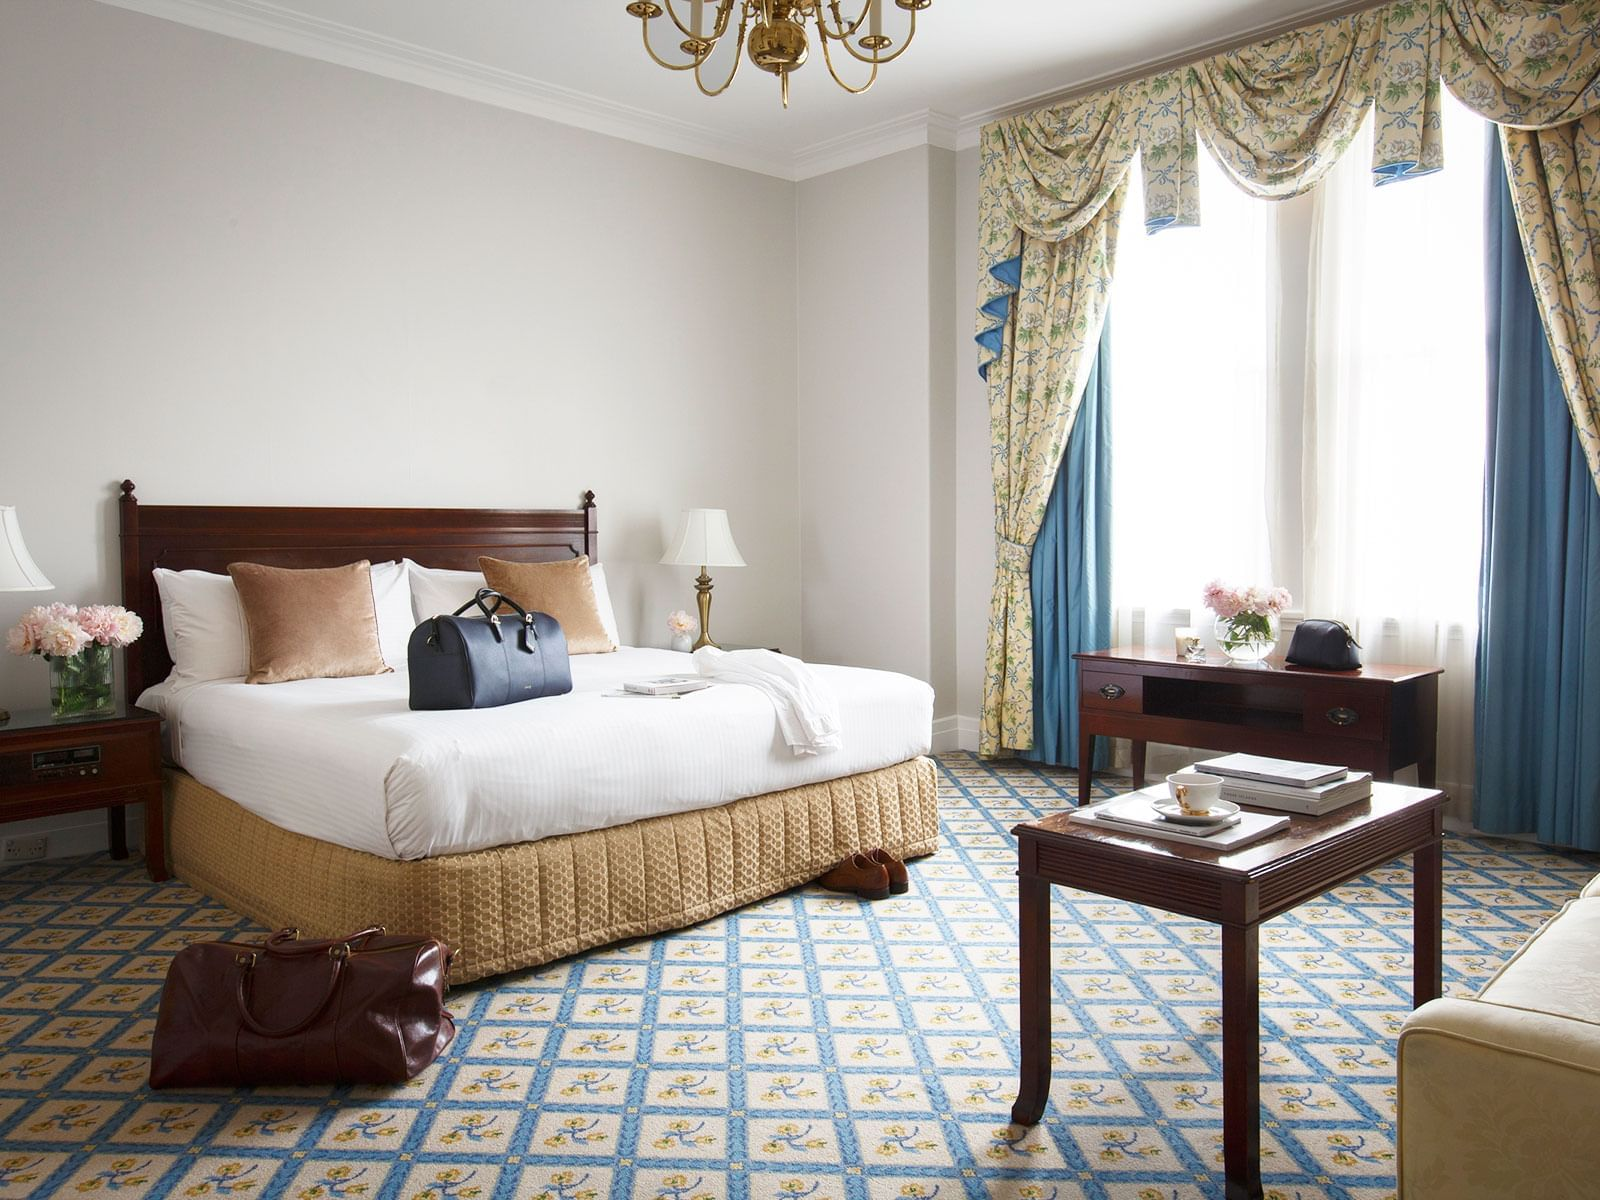 Deluxe Room at The Hotel Windsor Melbourne